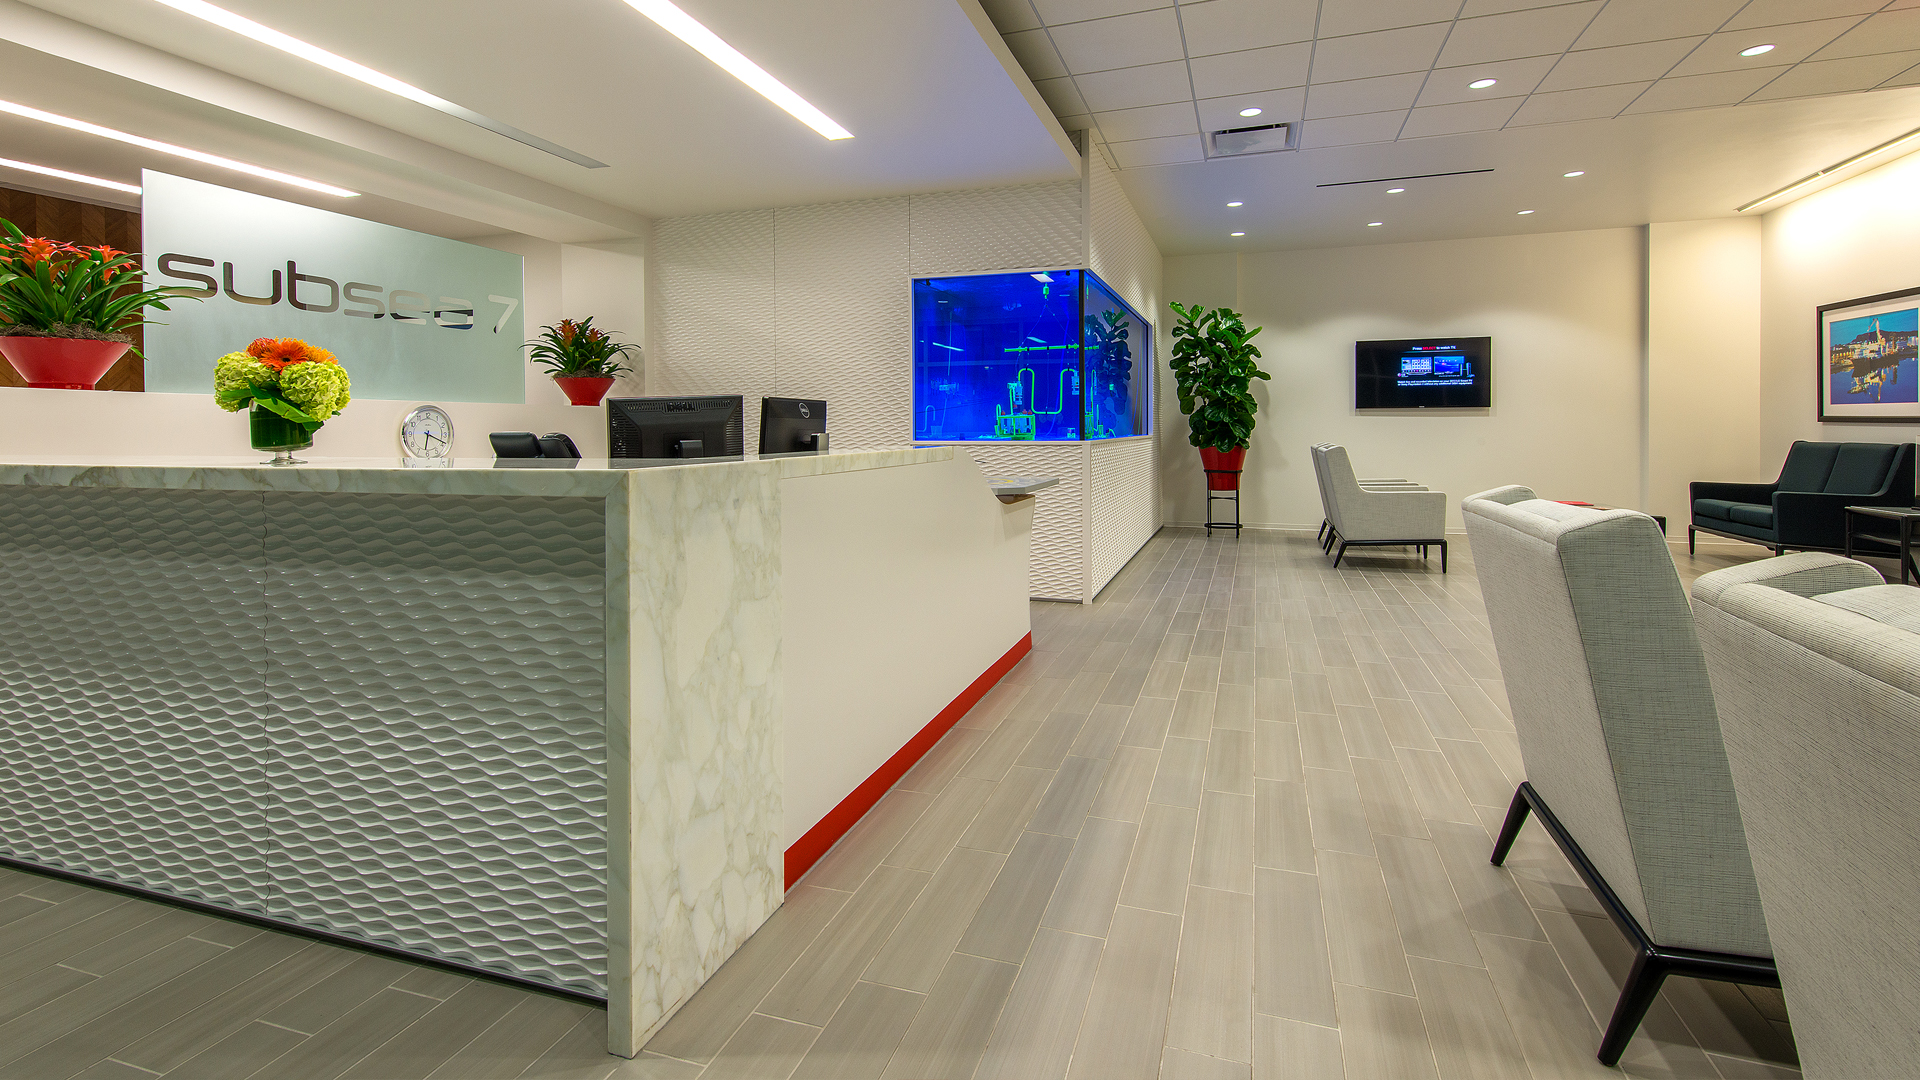 Corporate Interior Design Houston Subsea 7 Reception Lobby Aquatic theme